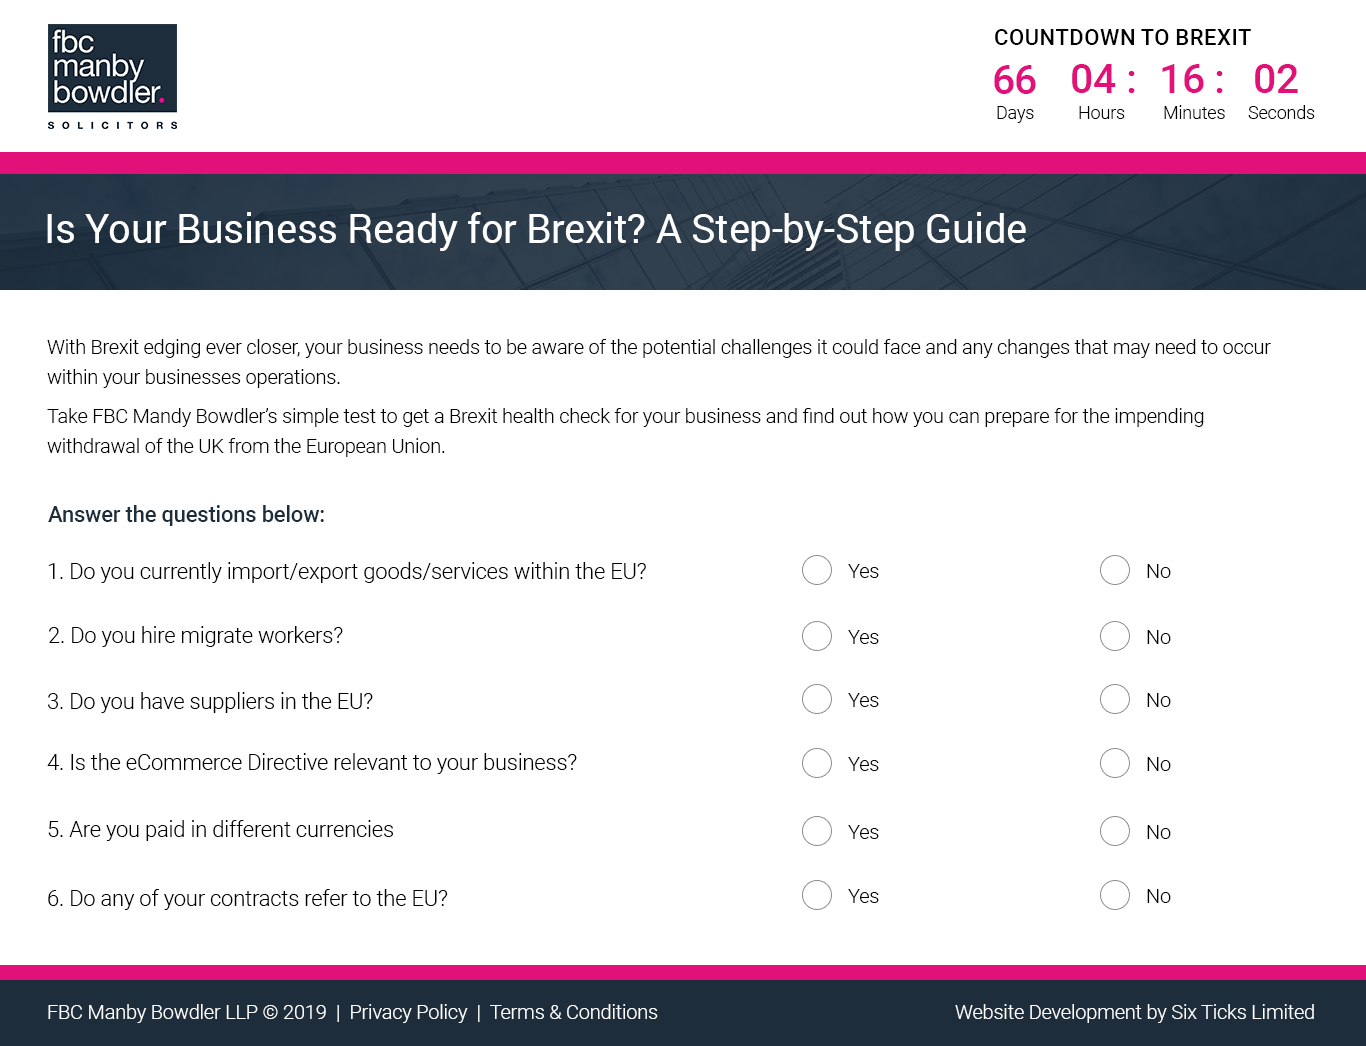 Online Brexit Quiz Developed for FBC Manby Bowdler